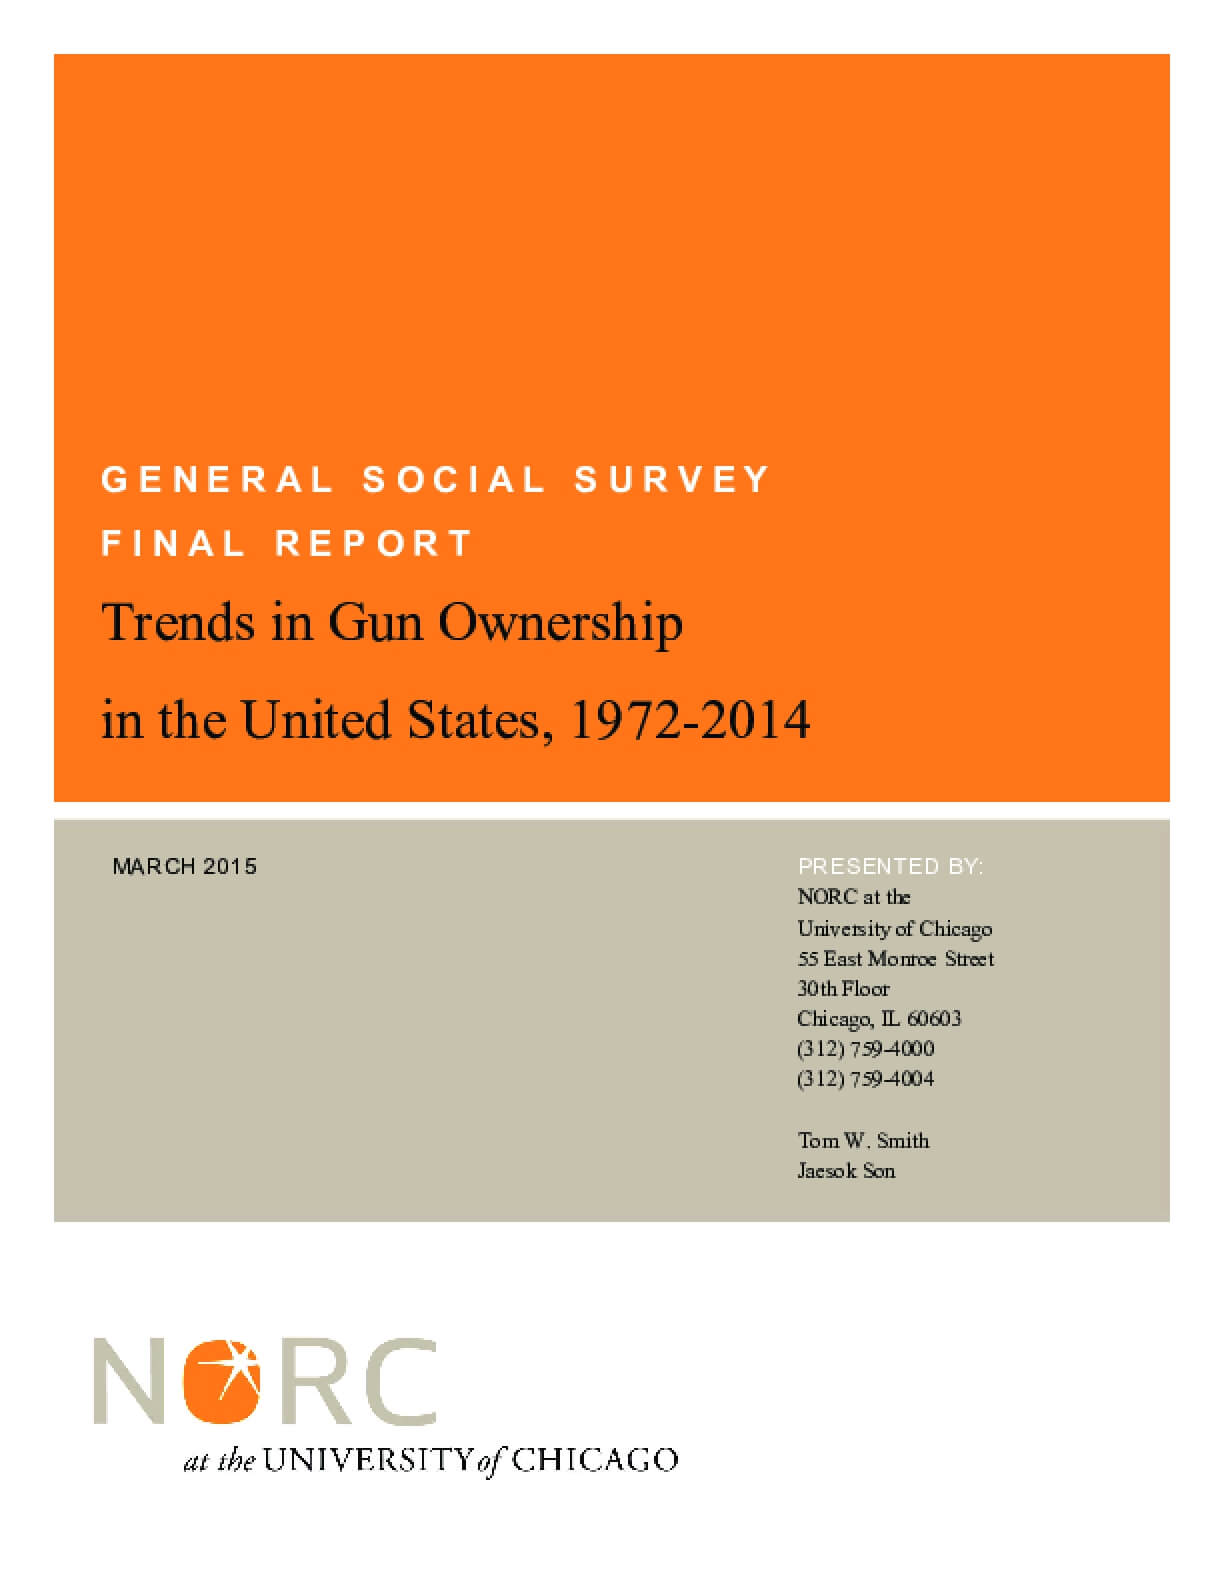 Trends in Gun Ownership in the United States, 1972-2014